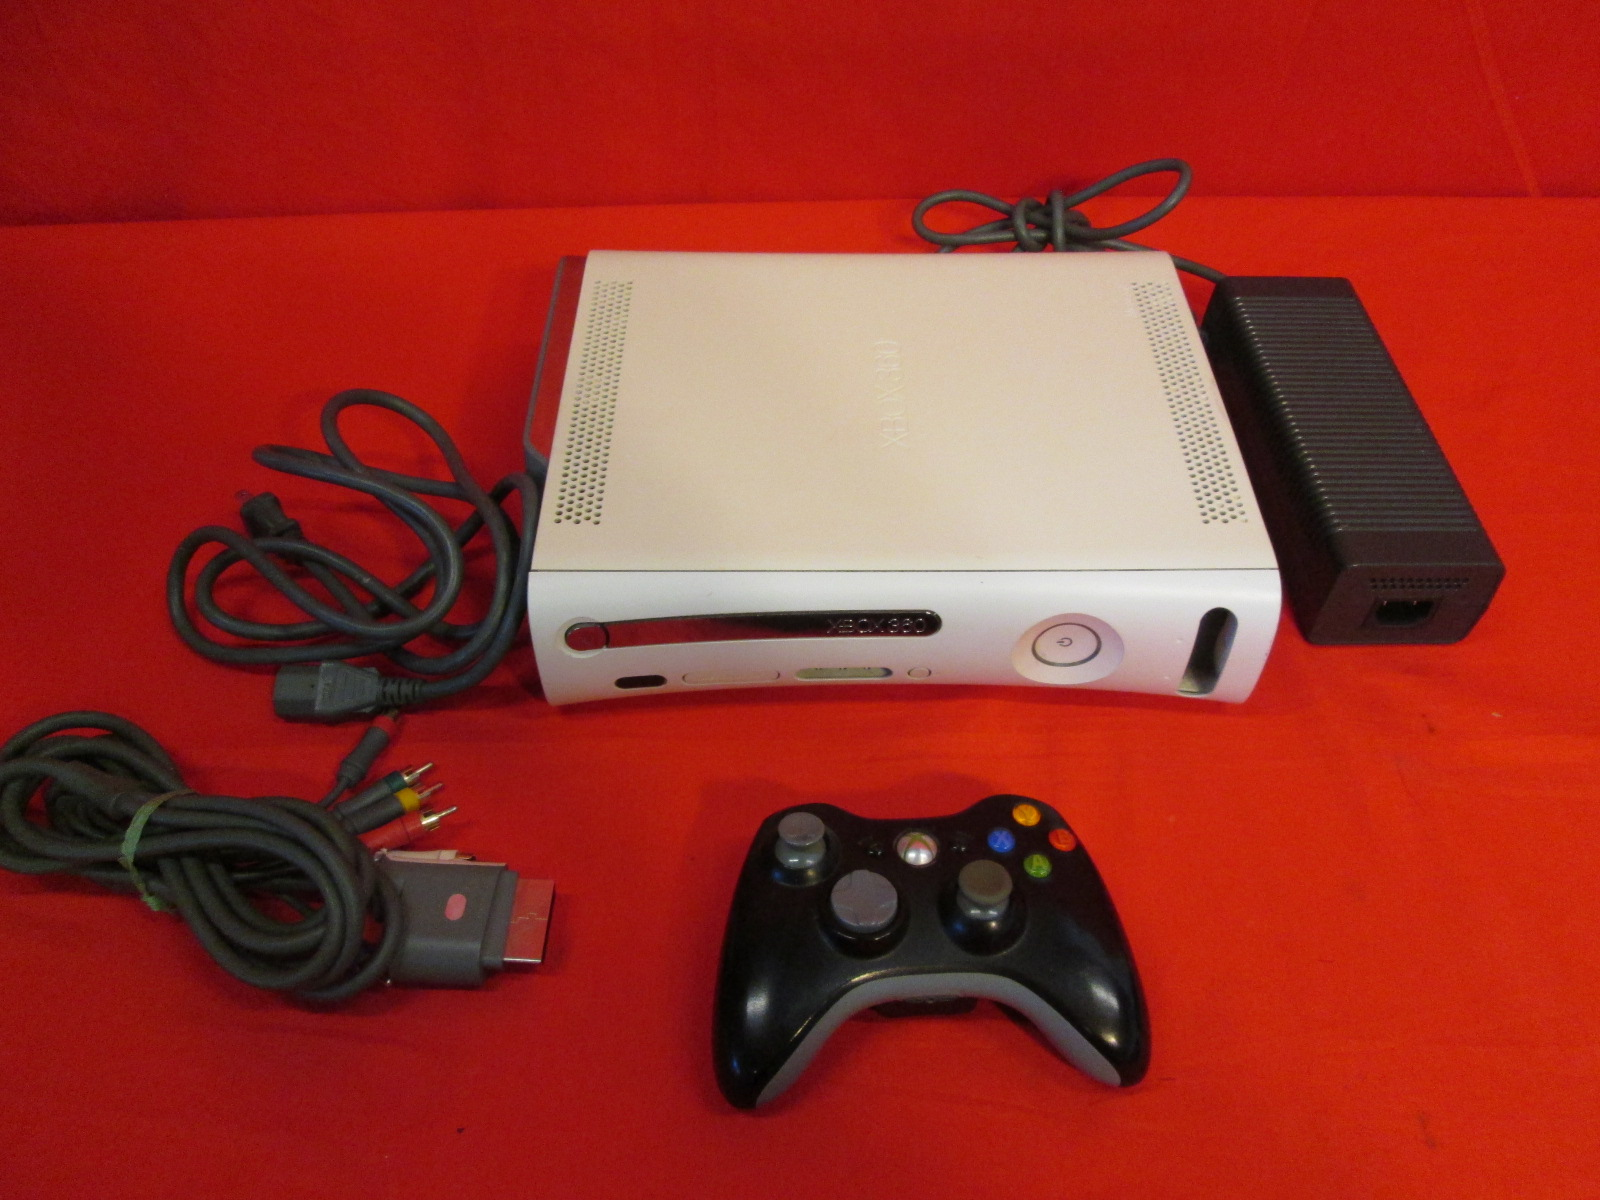 xbox 360 game console The xbox one gaming console has received updates from microsoft since its launch in 2013 that enable it to play select games from its two predecessor consoles, xbox and xbox 360.